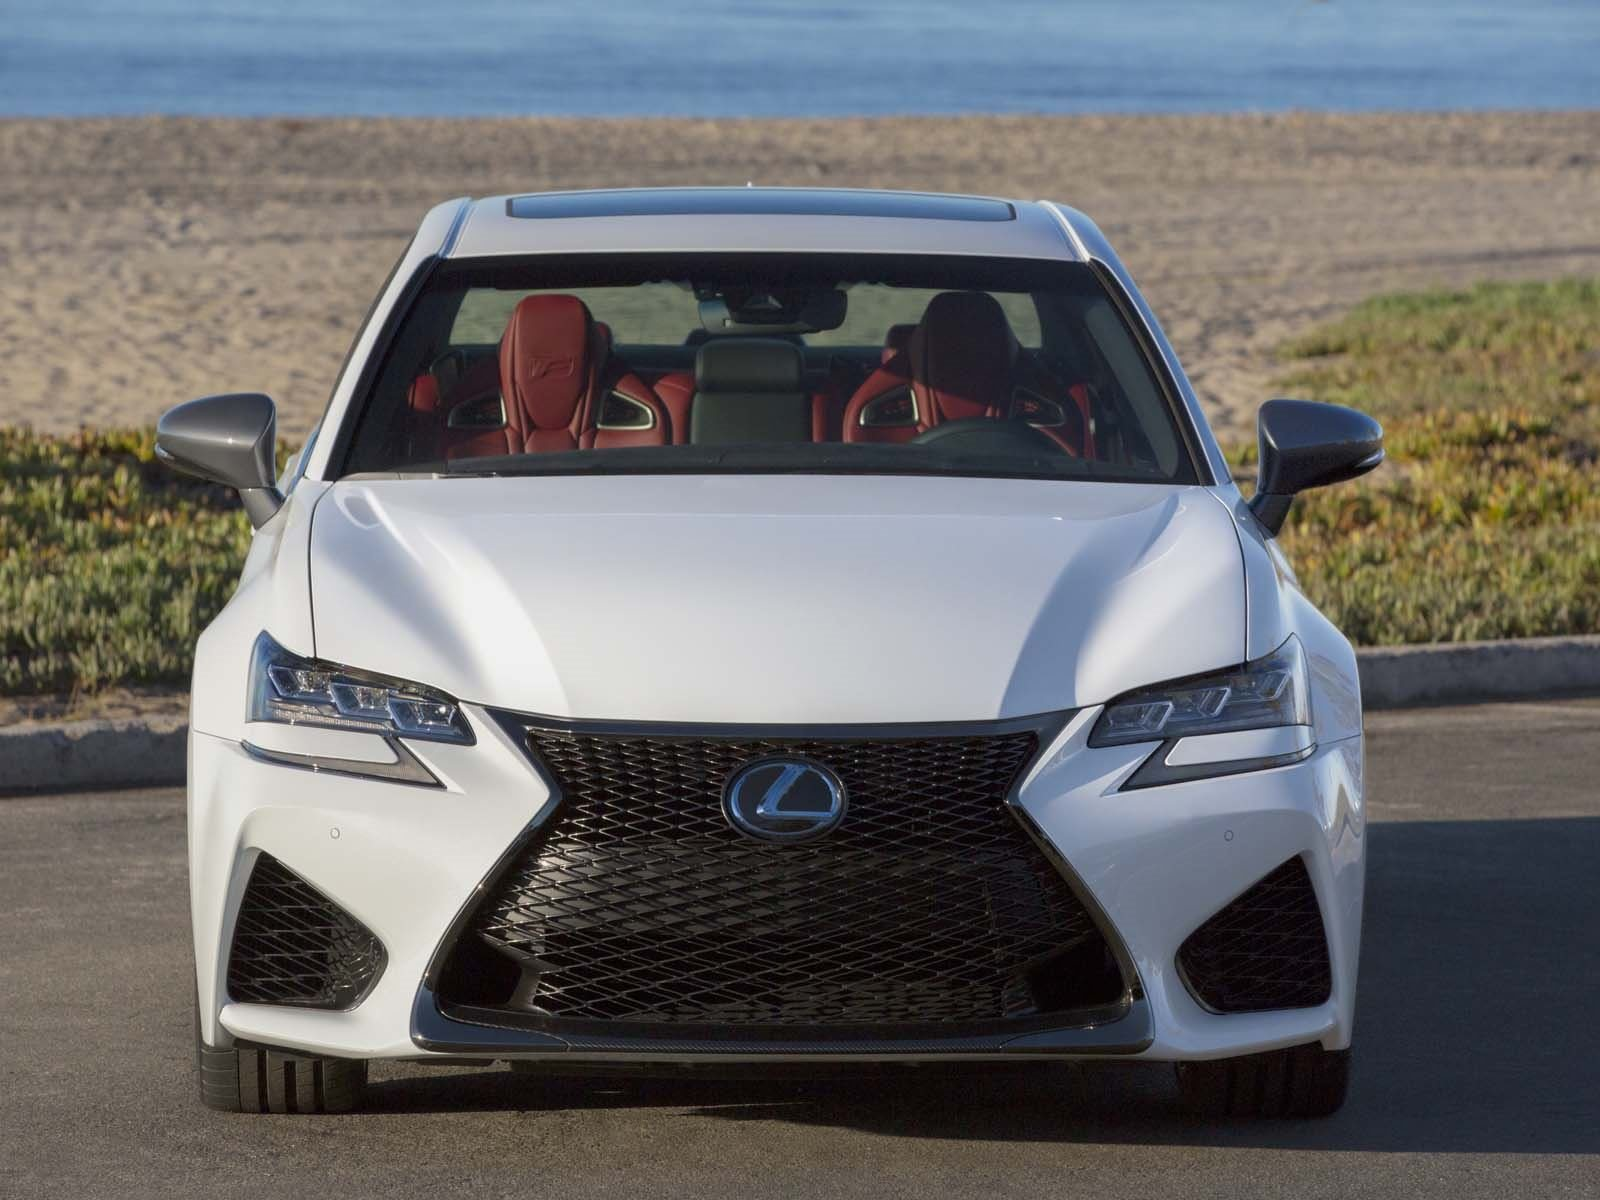 Lexus Gs Might Not Be Long For This World Carbuzz